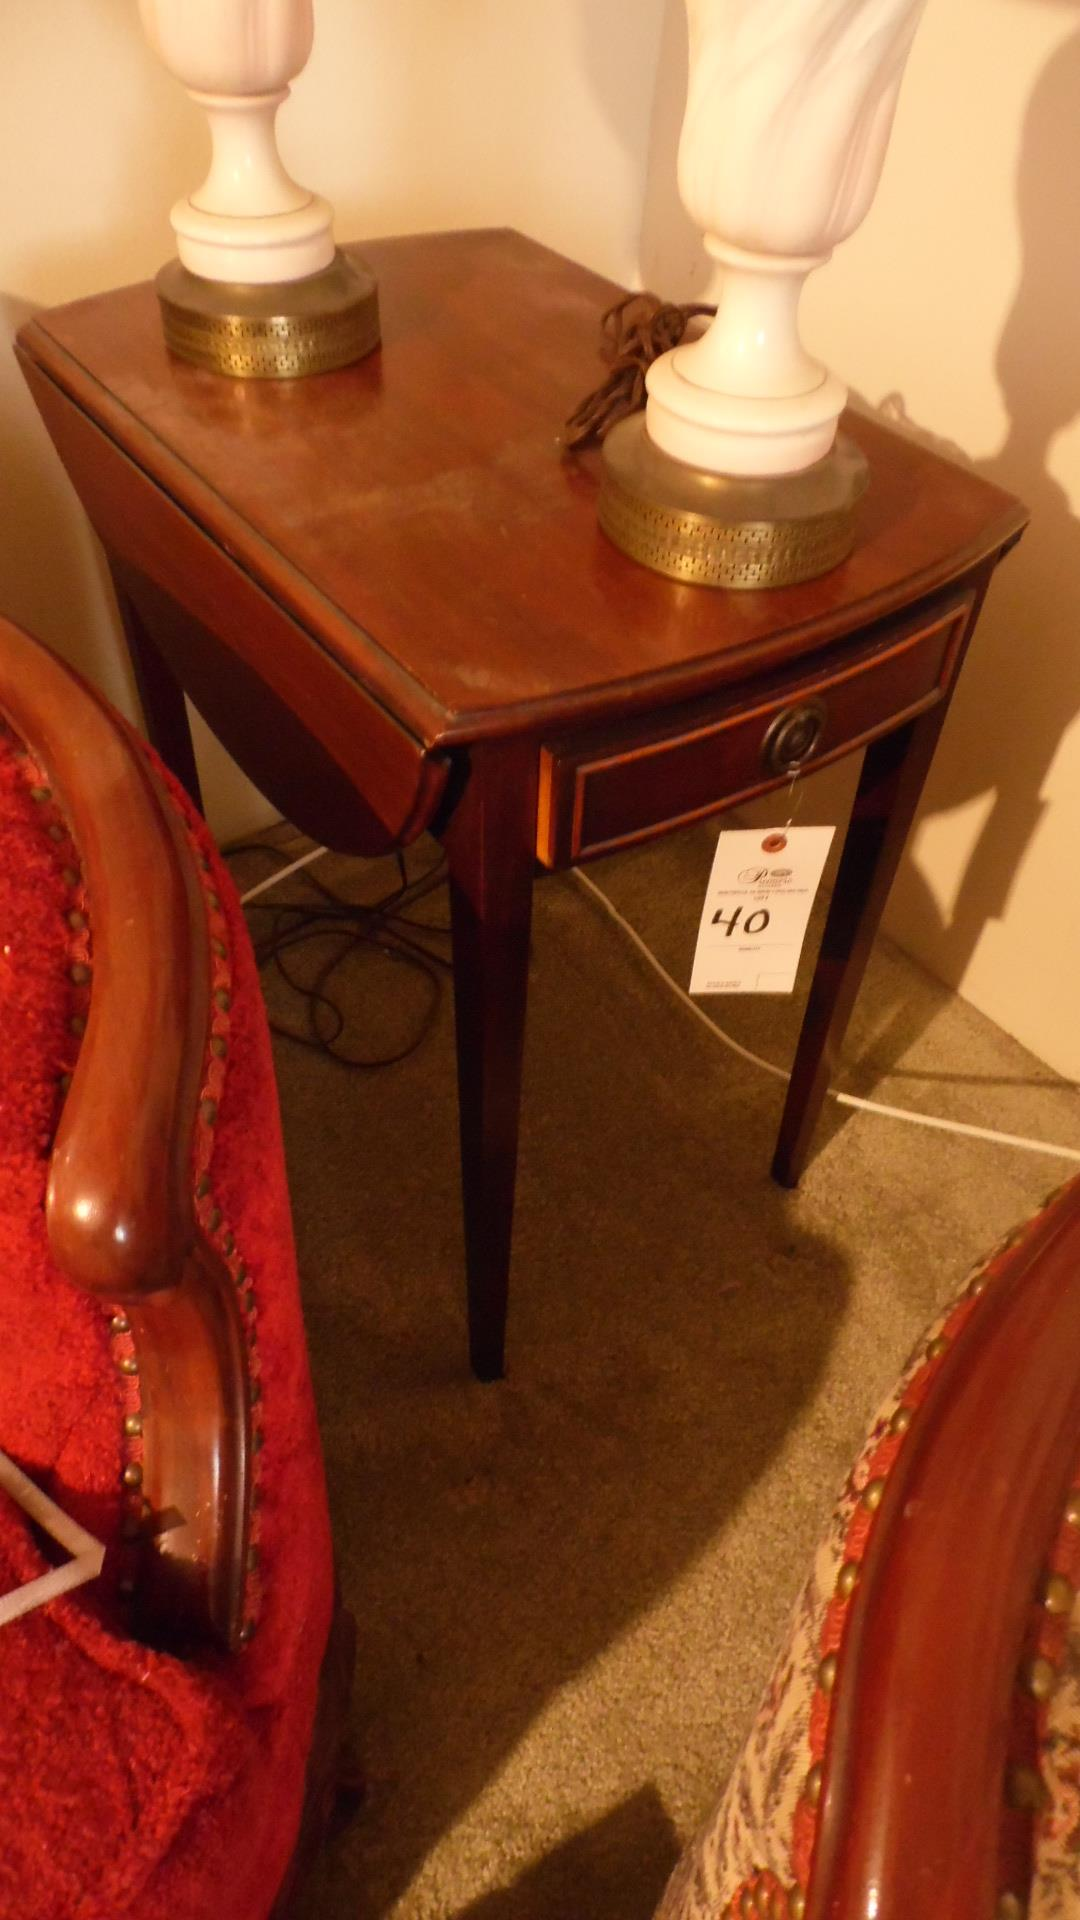 Lot 40 - SMALL DROP LEAF TABLE